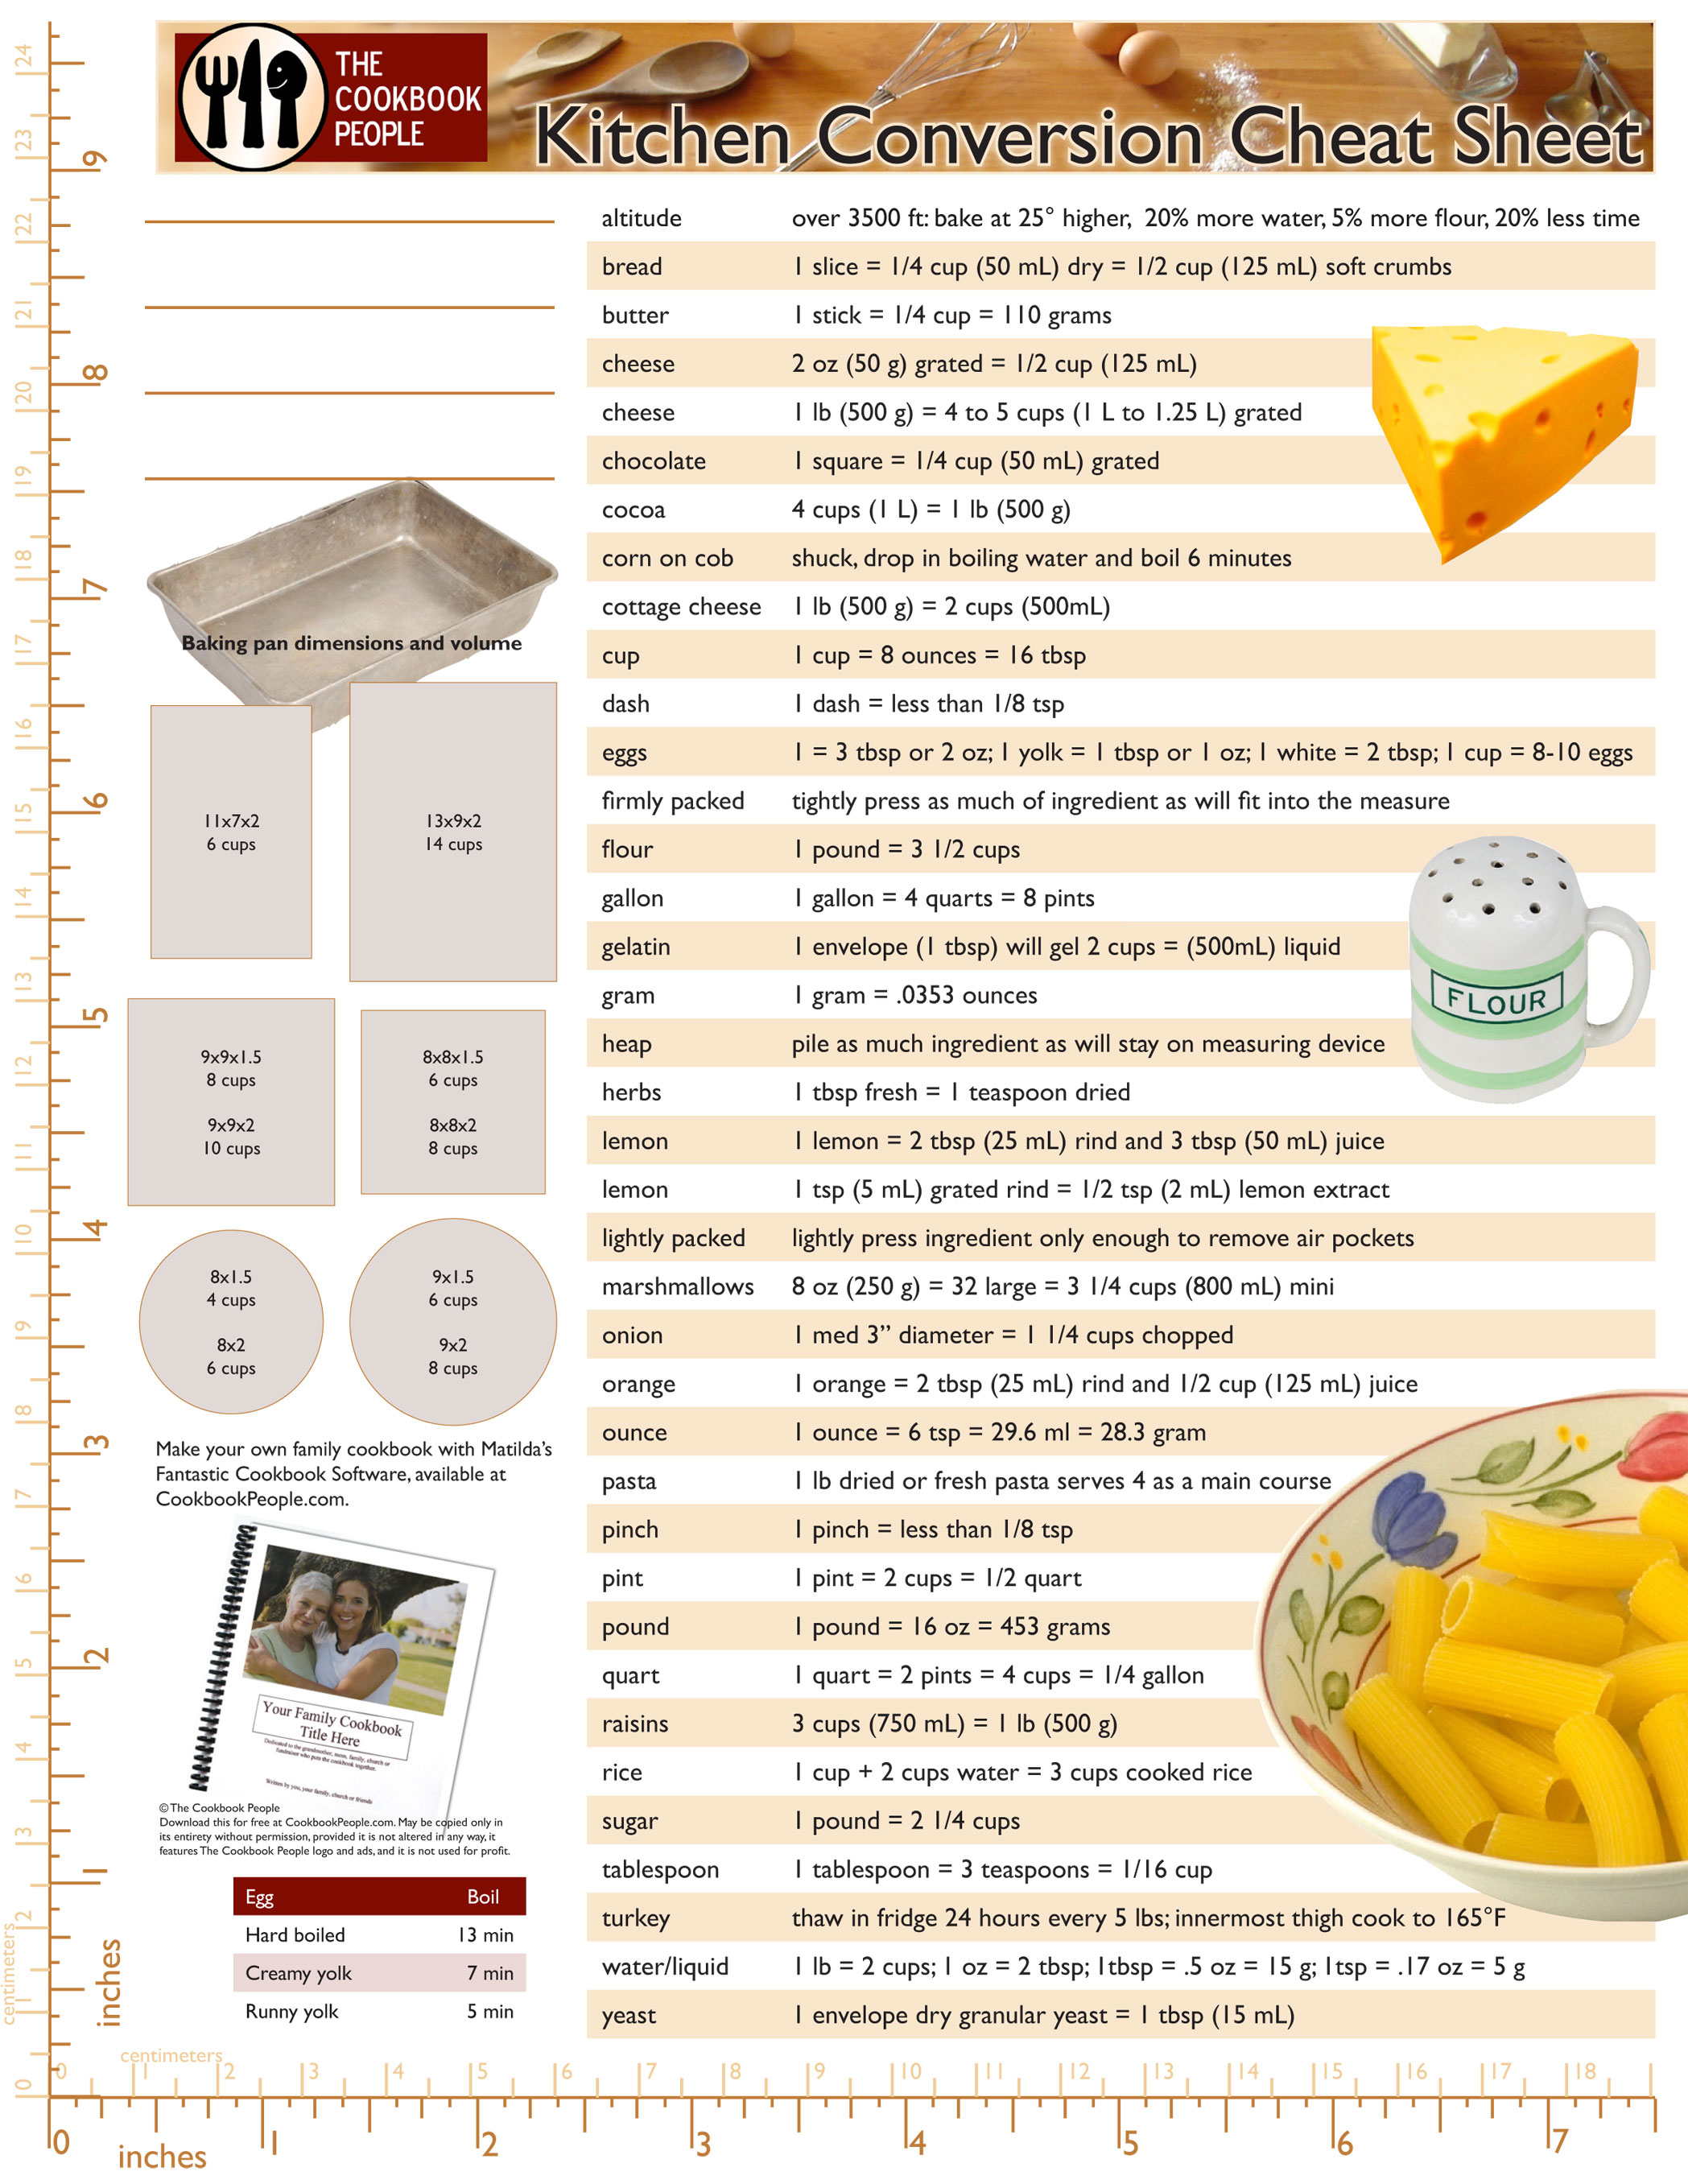 Family cookbook site releases free printer friendly kitchen conversion chart page 1 geenschuldenfo Images